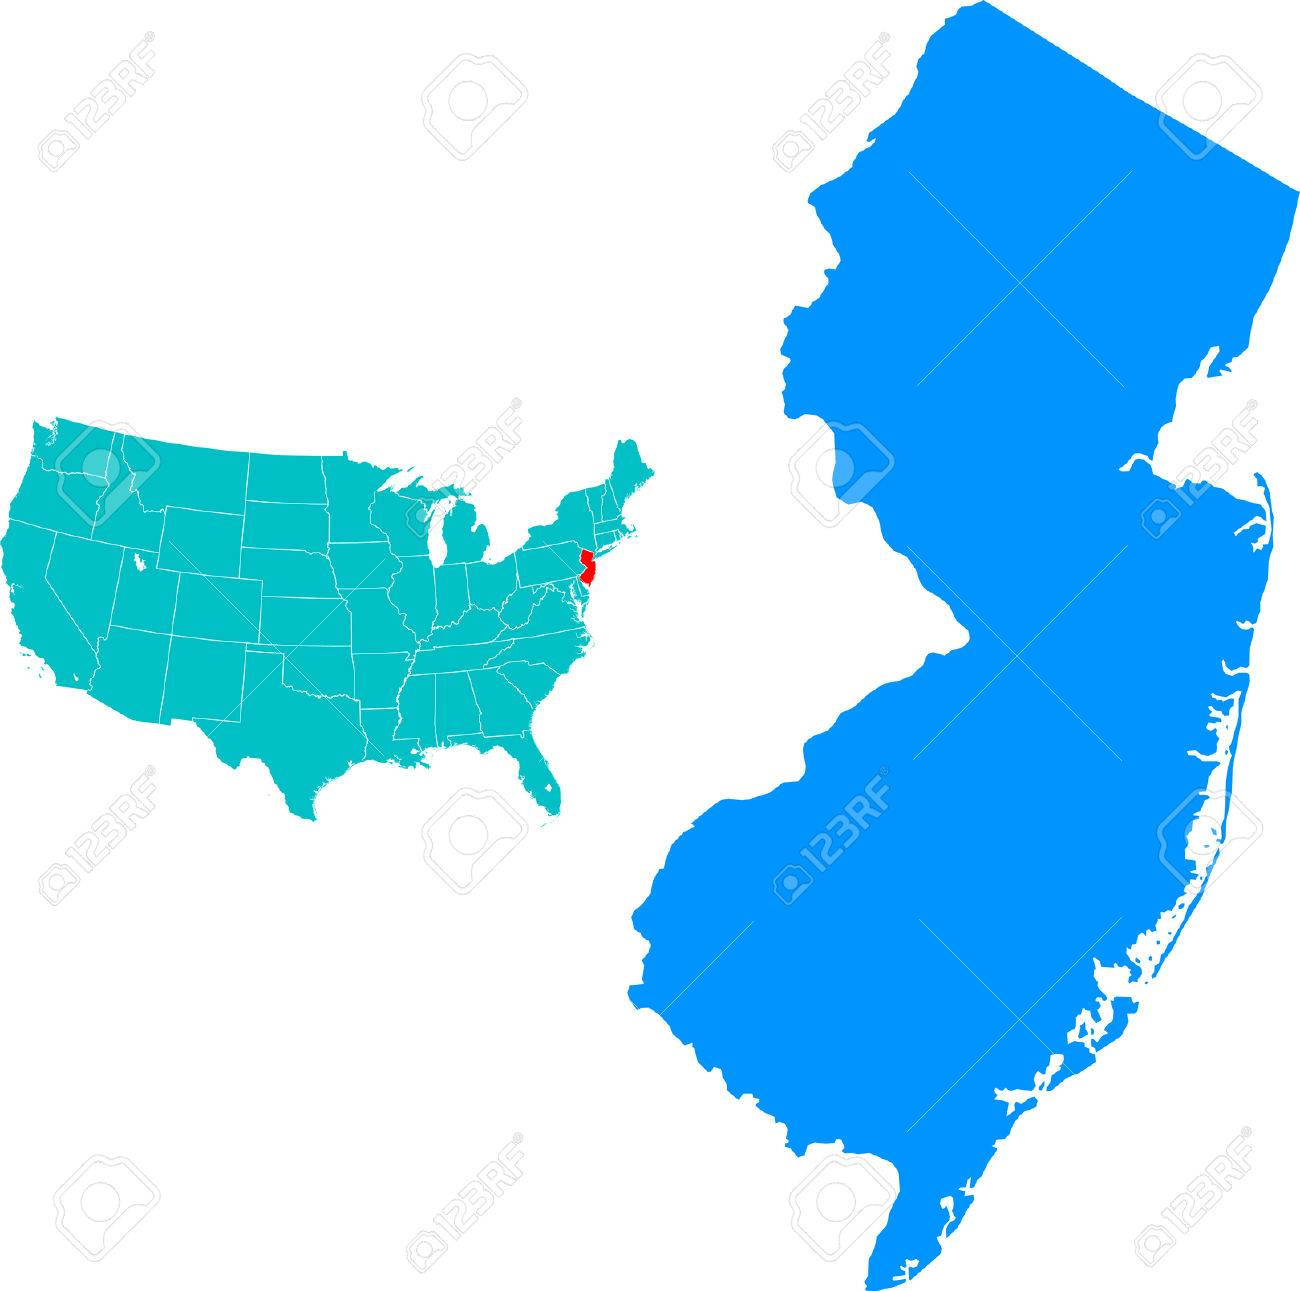 New Jersey Map Royalty Free Cliparts Vectors And Stock - Newjerseymap